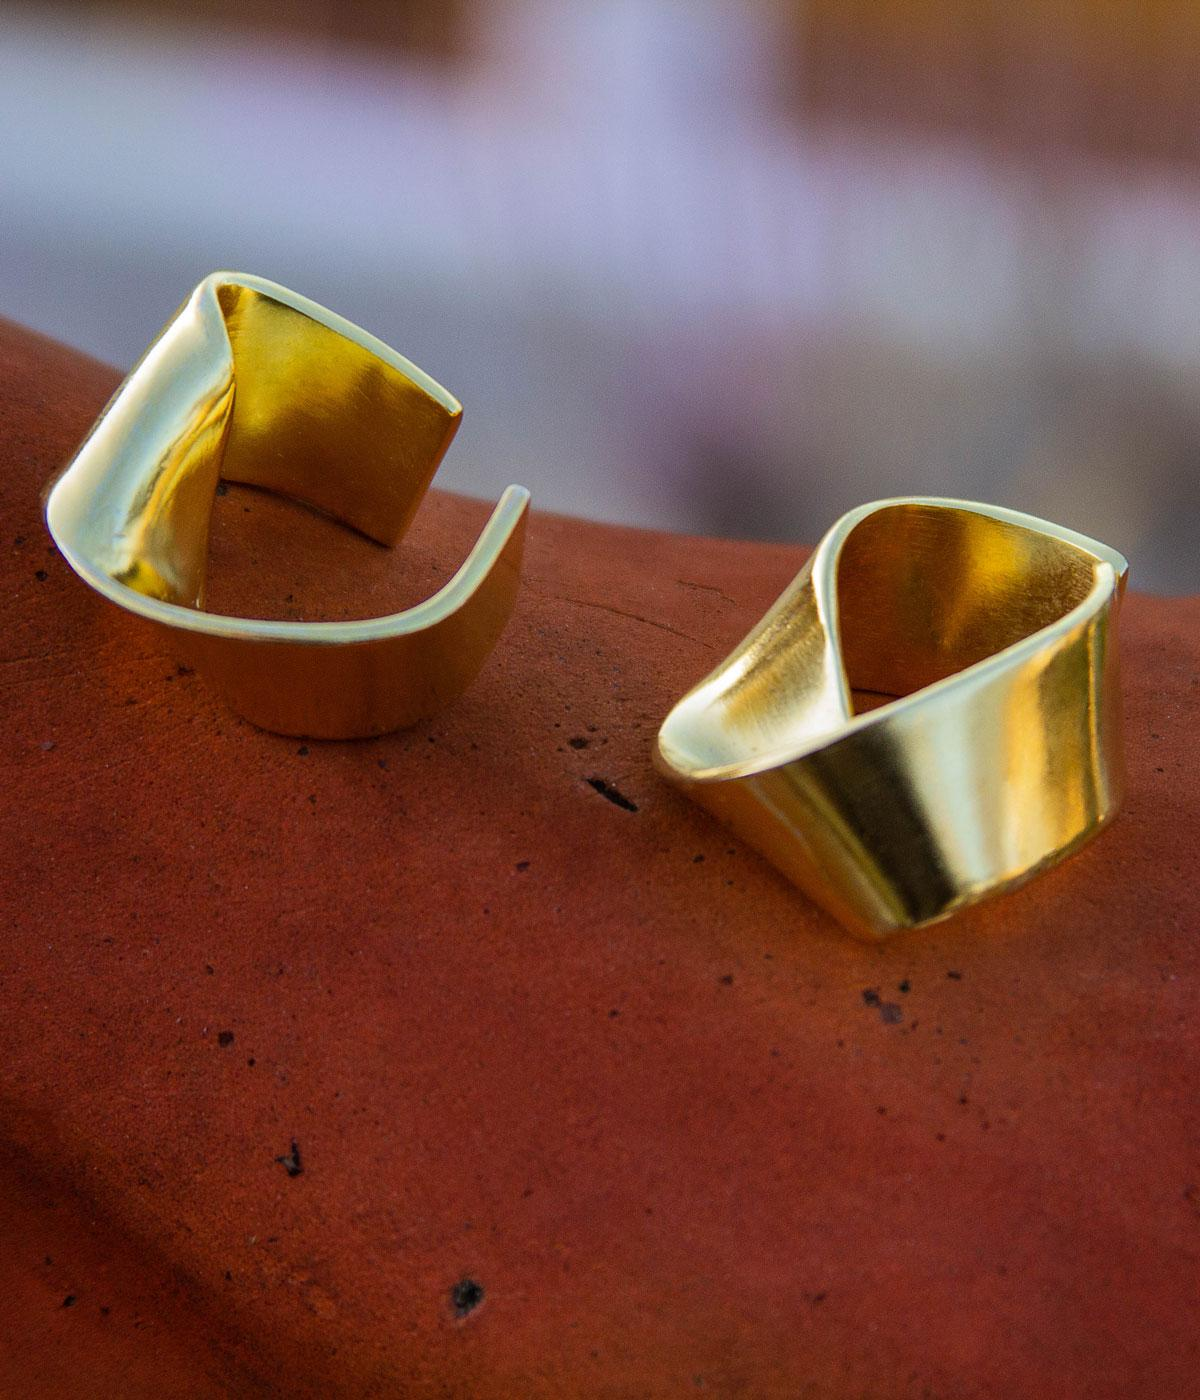 YSSO earrings are a simple circle of gold